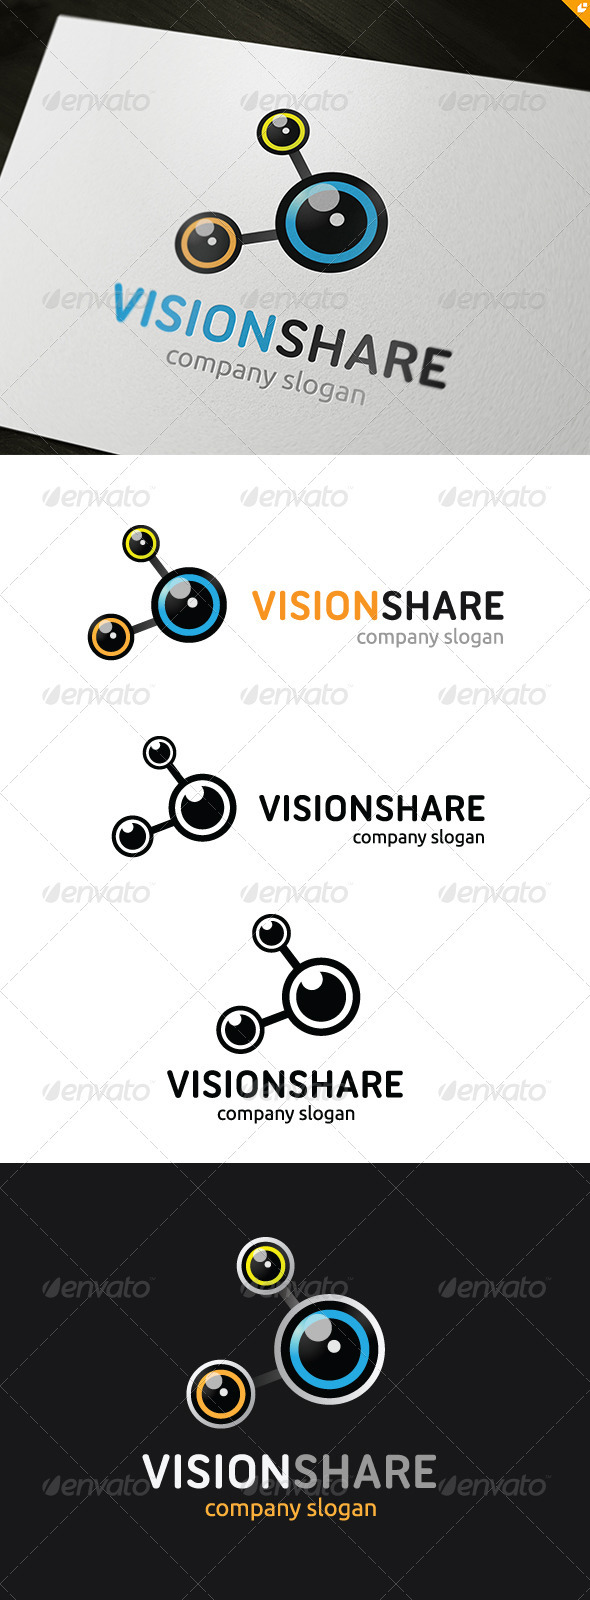 Vision Share Logo - Vector Abstract